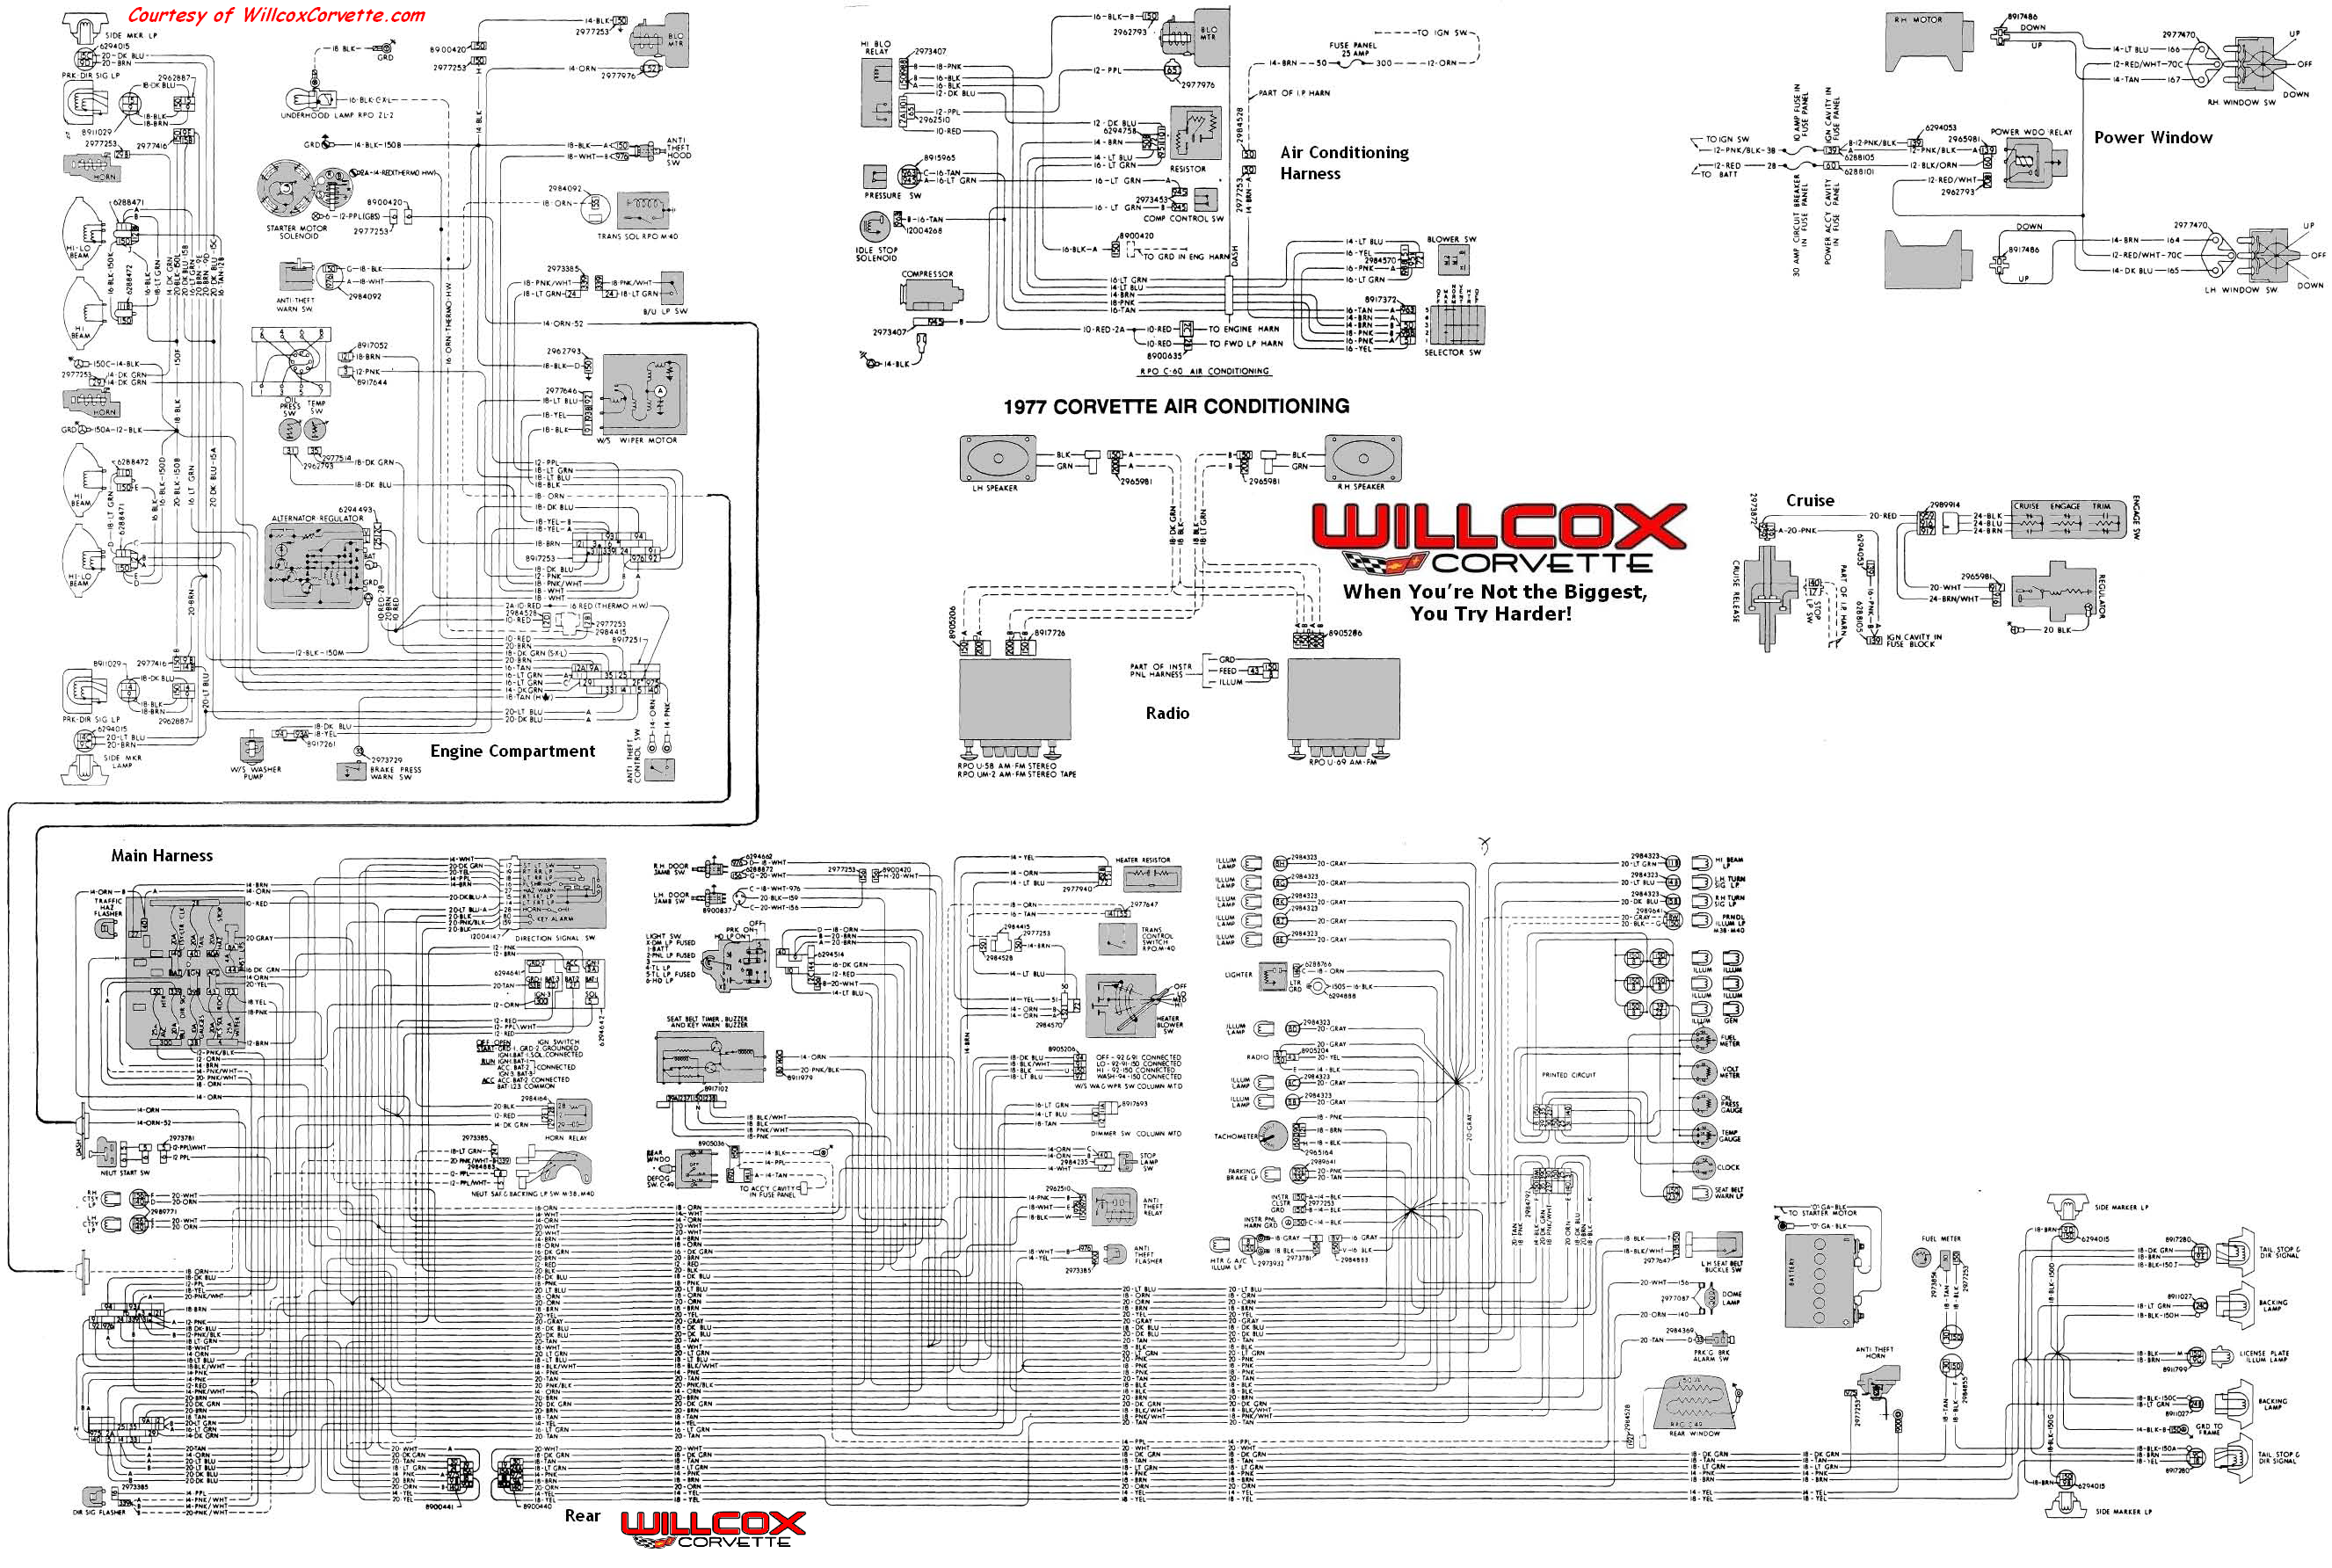 1980 corvette wiring diagram 77 corvette wiring diagram \u2022 wiring Accel HEI Distributor Wiring Diagram 1991 corvette wiring diagram schematic